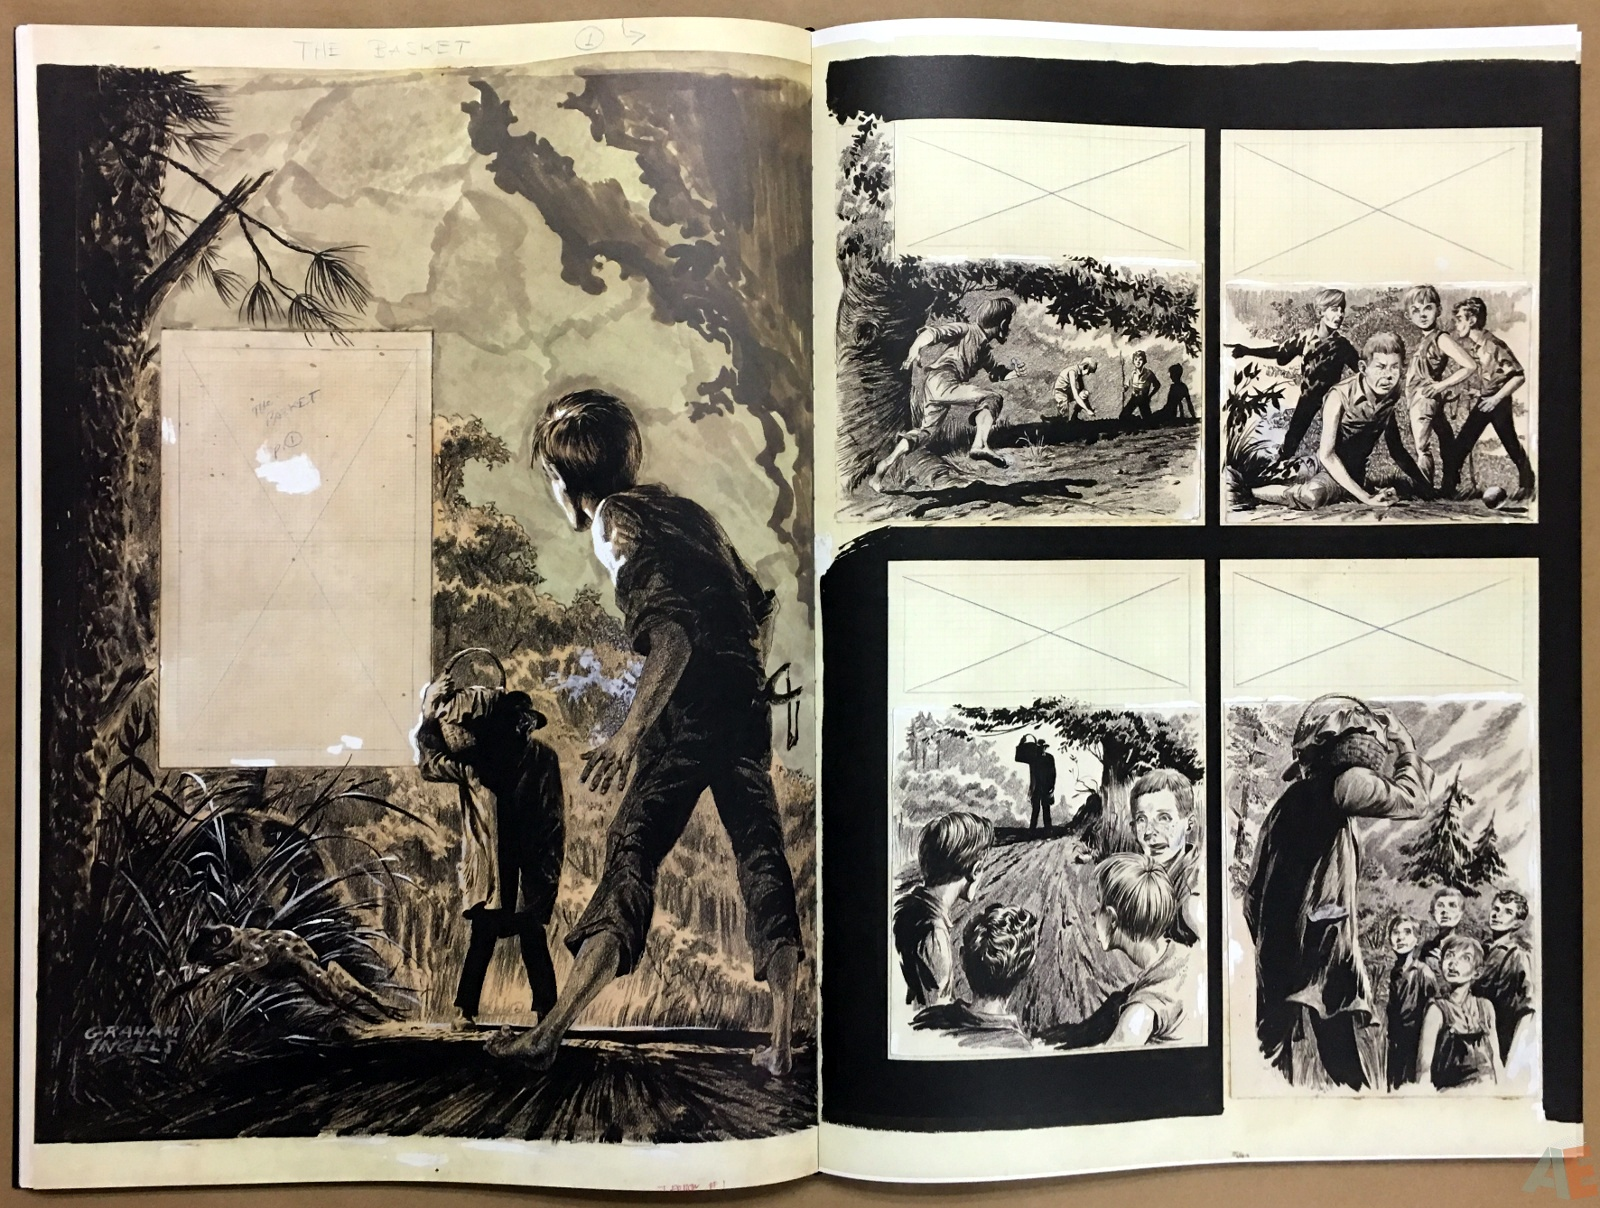 Graham Ingels' EC Stories Artist's Edition 28